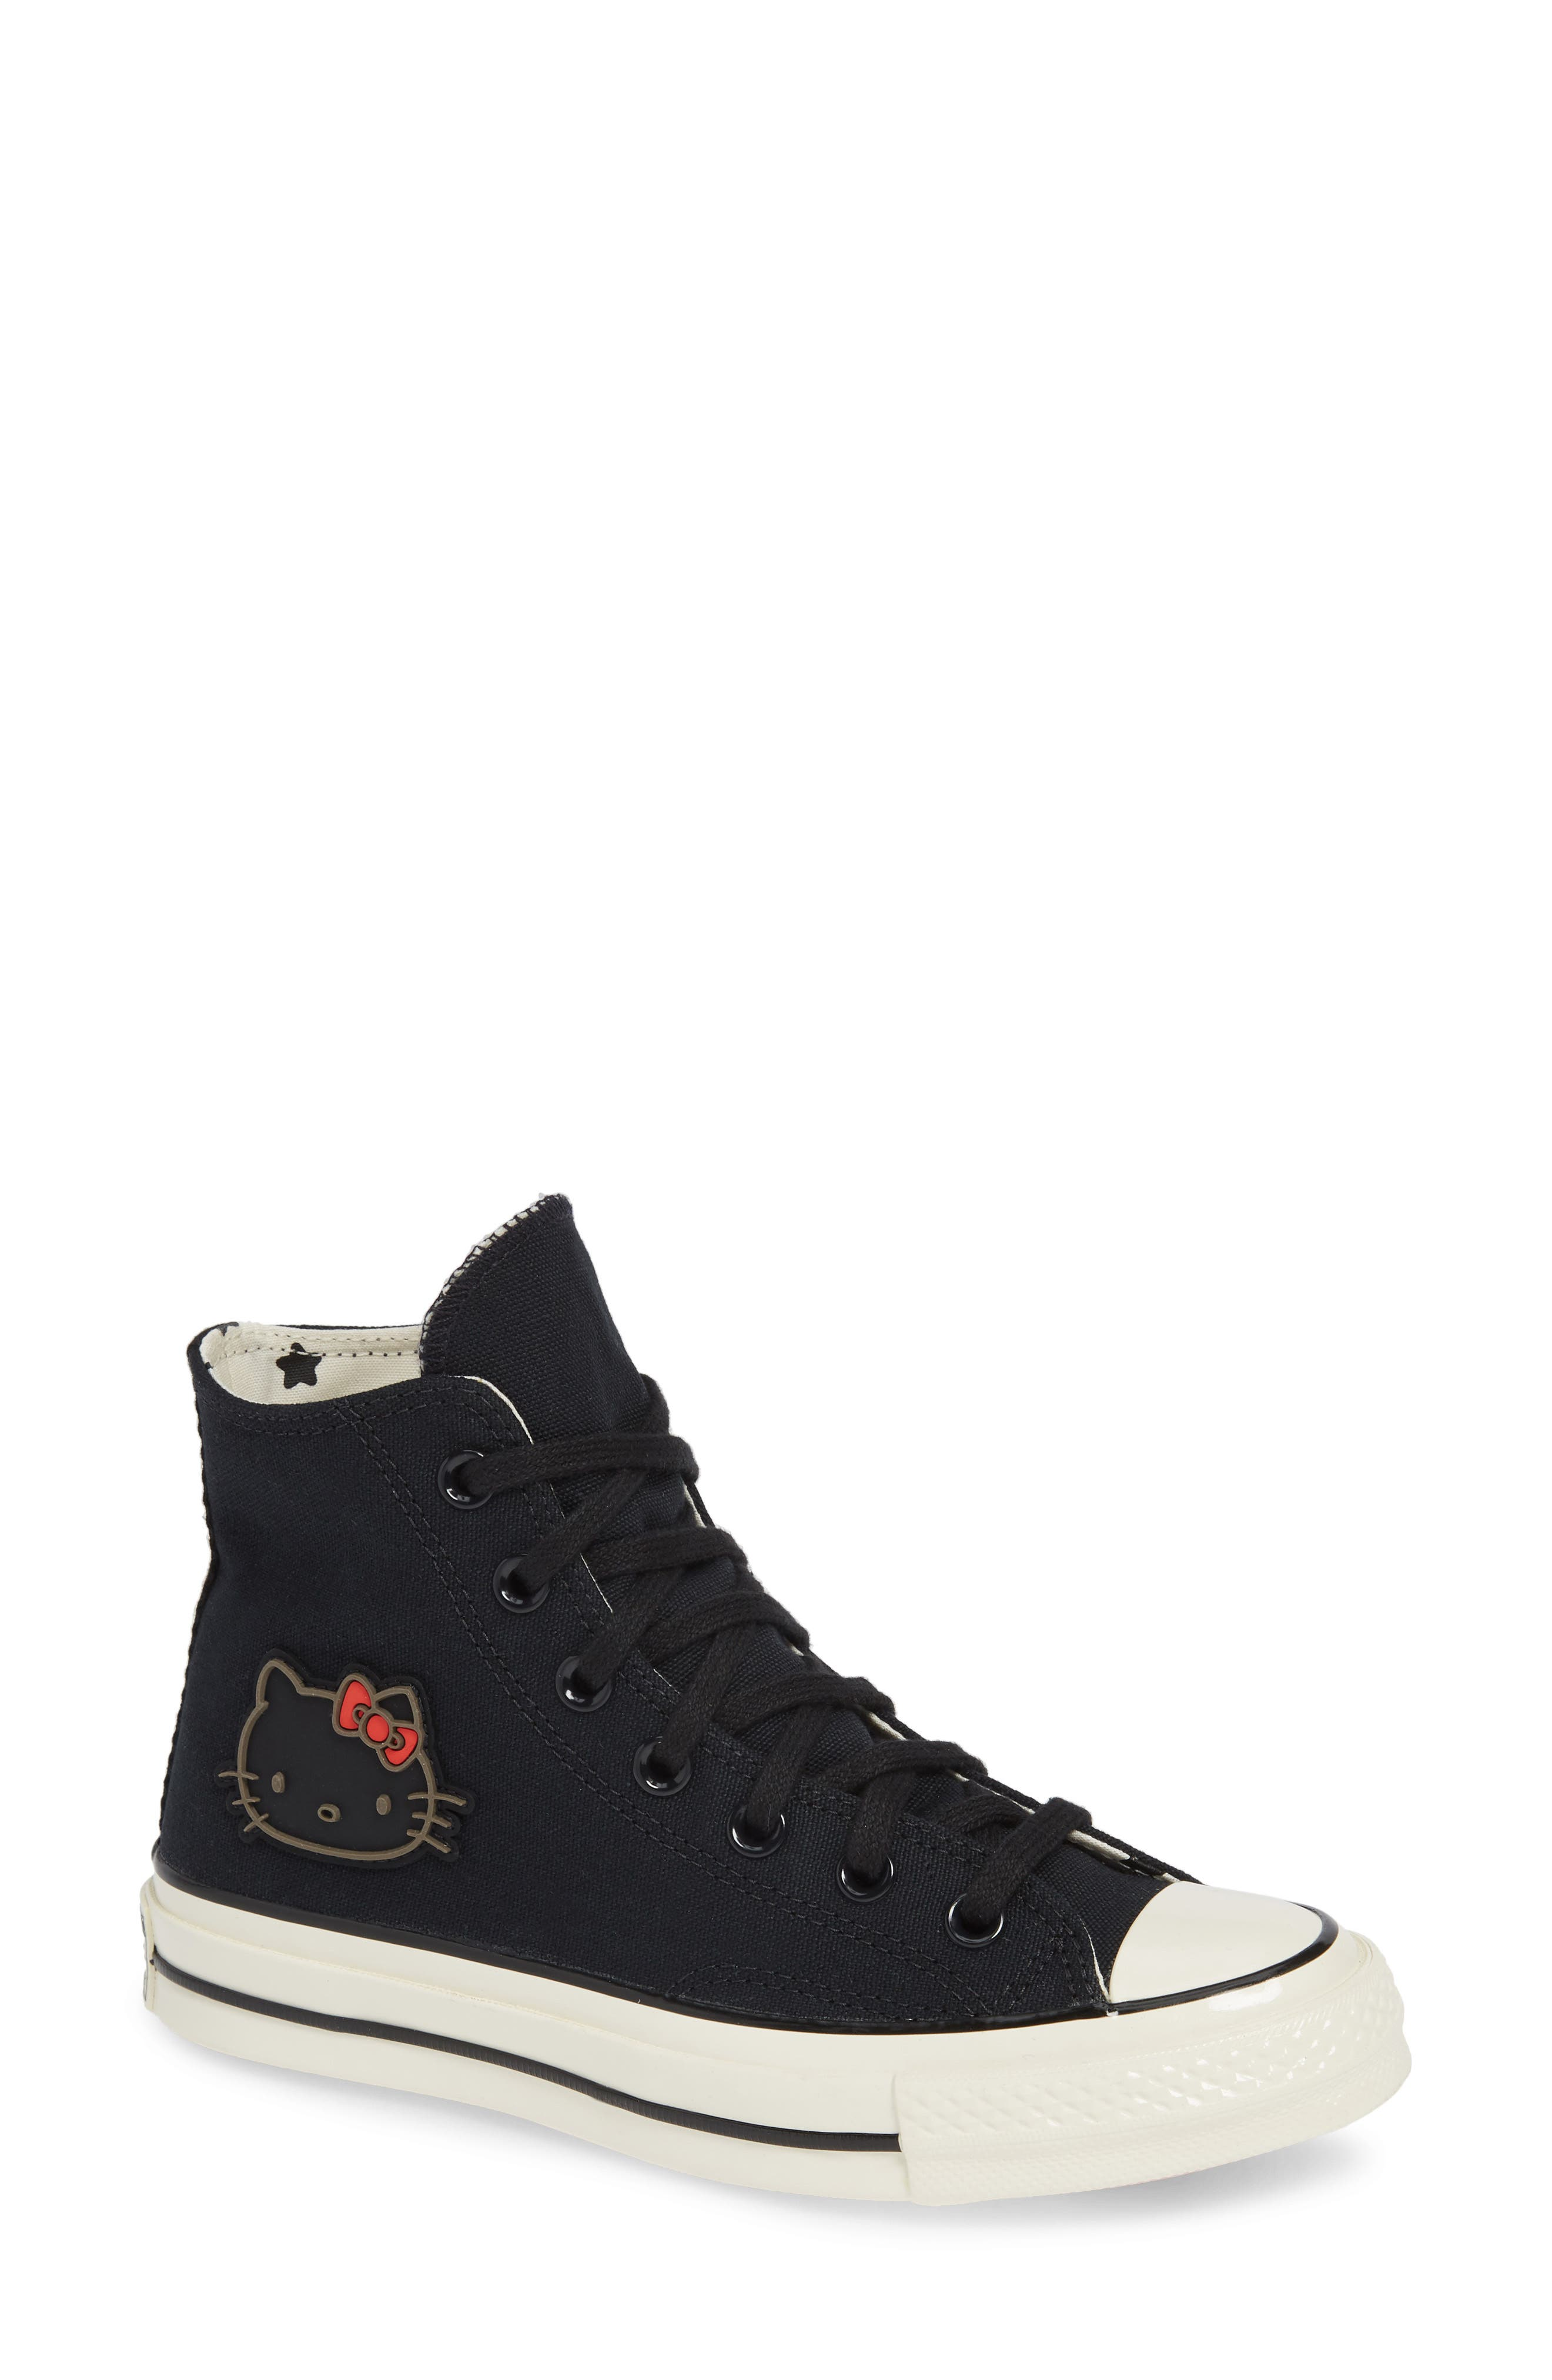 x Hello Kitty<sup>®</sup> Chuck Taylor<sup>®</sup> All Star<sup>®</sup> CT 70 High Top Sneaker,                             Main thumbnail 1, color,                             CONVERSE BLACK